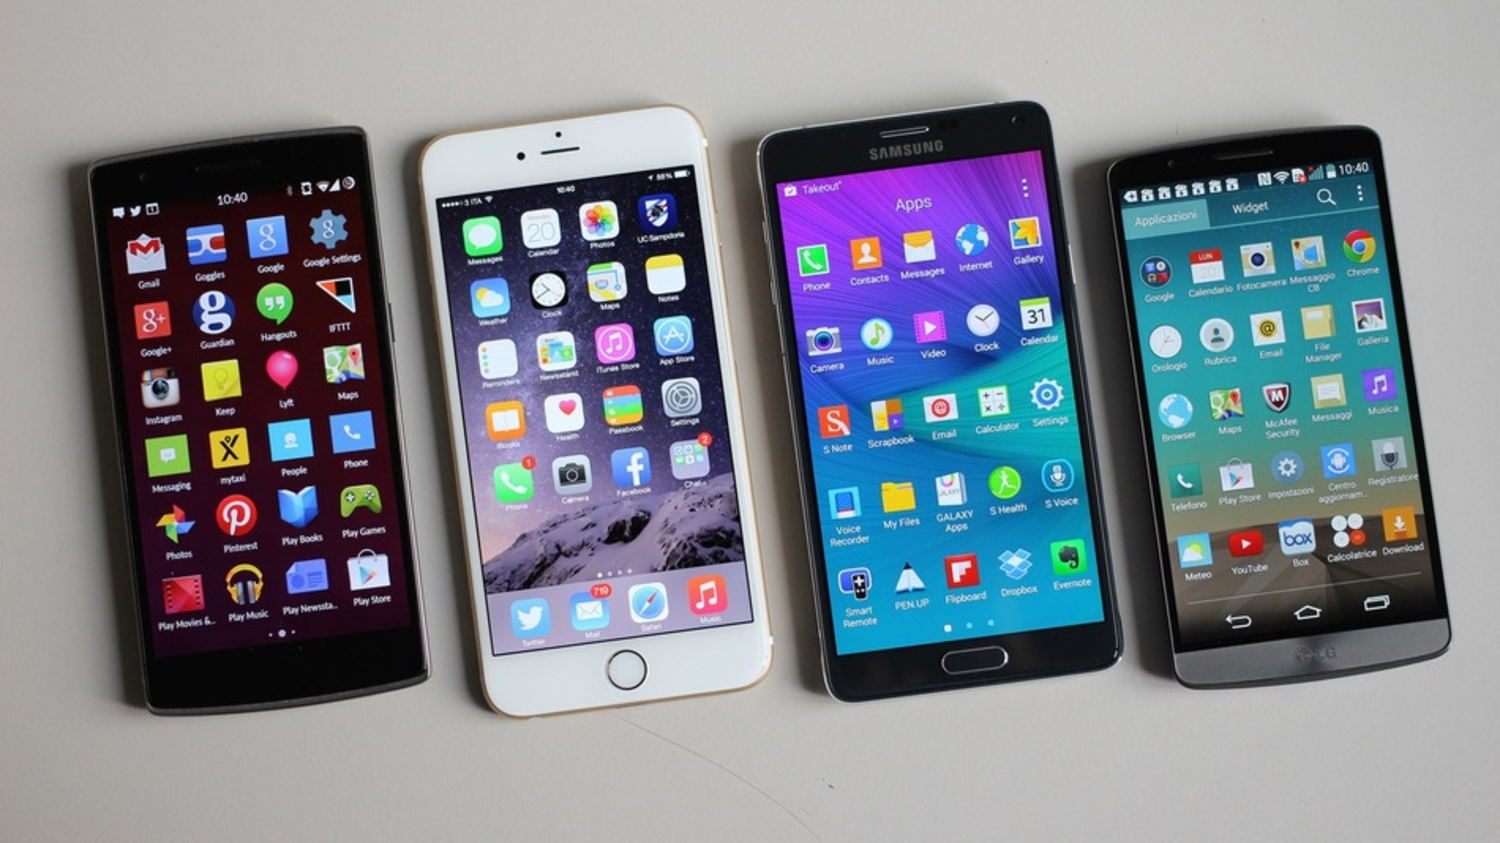 The Top 5 Phablets Right Now